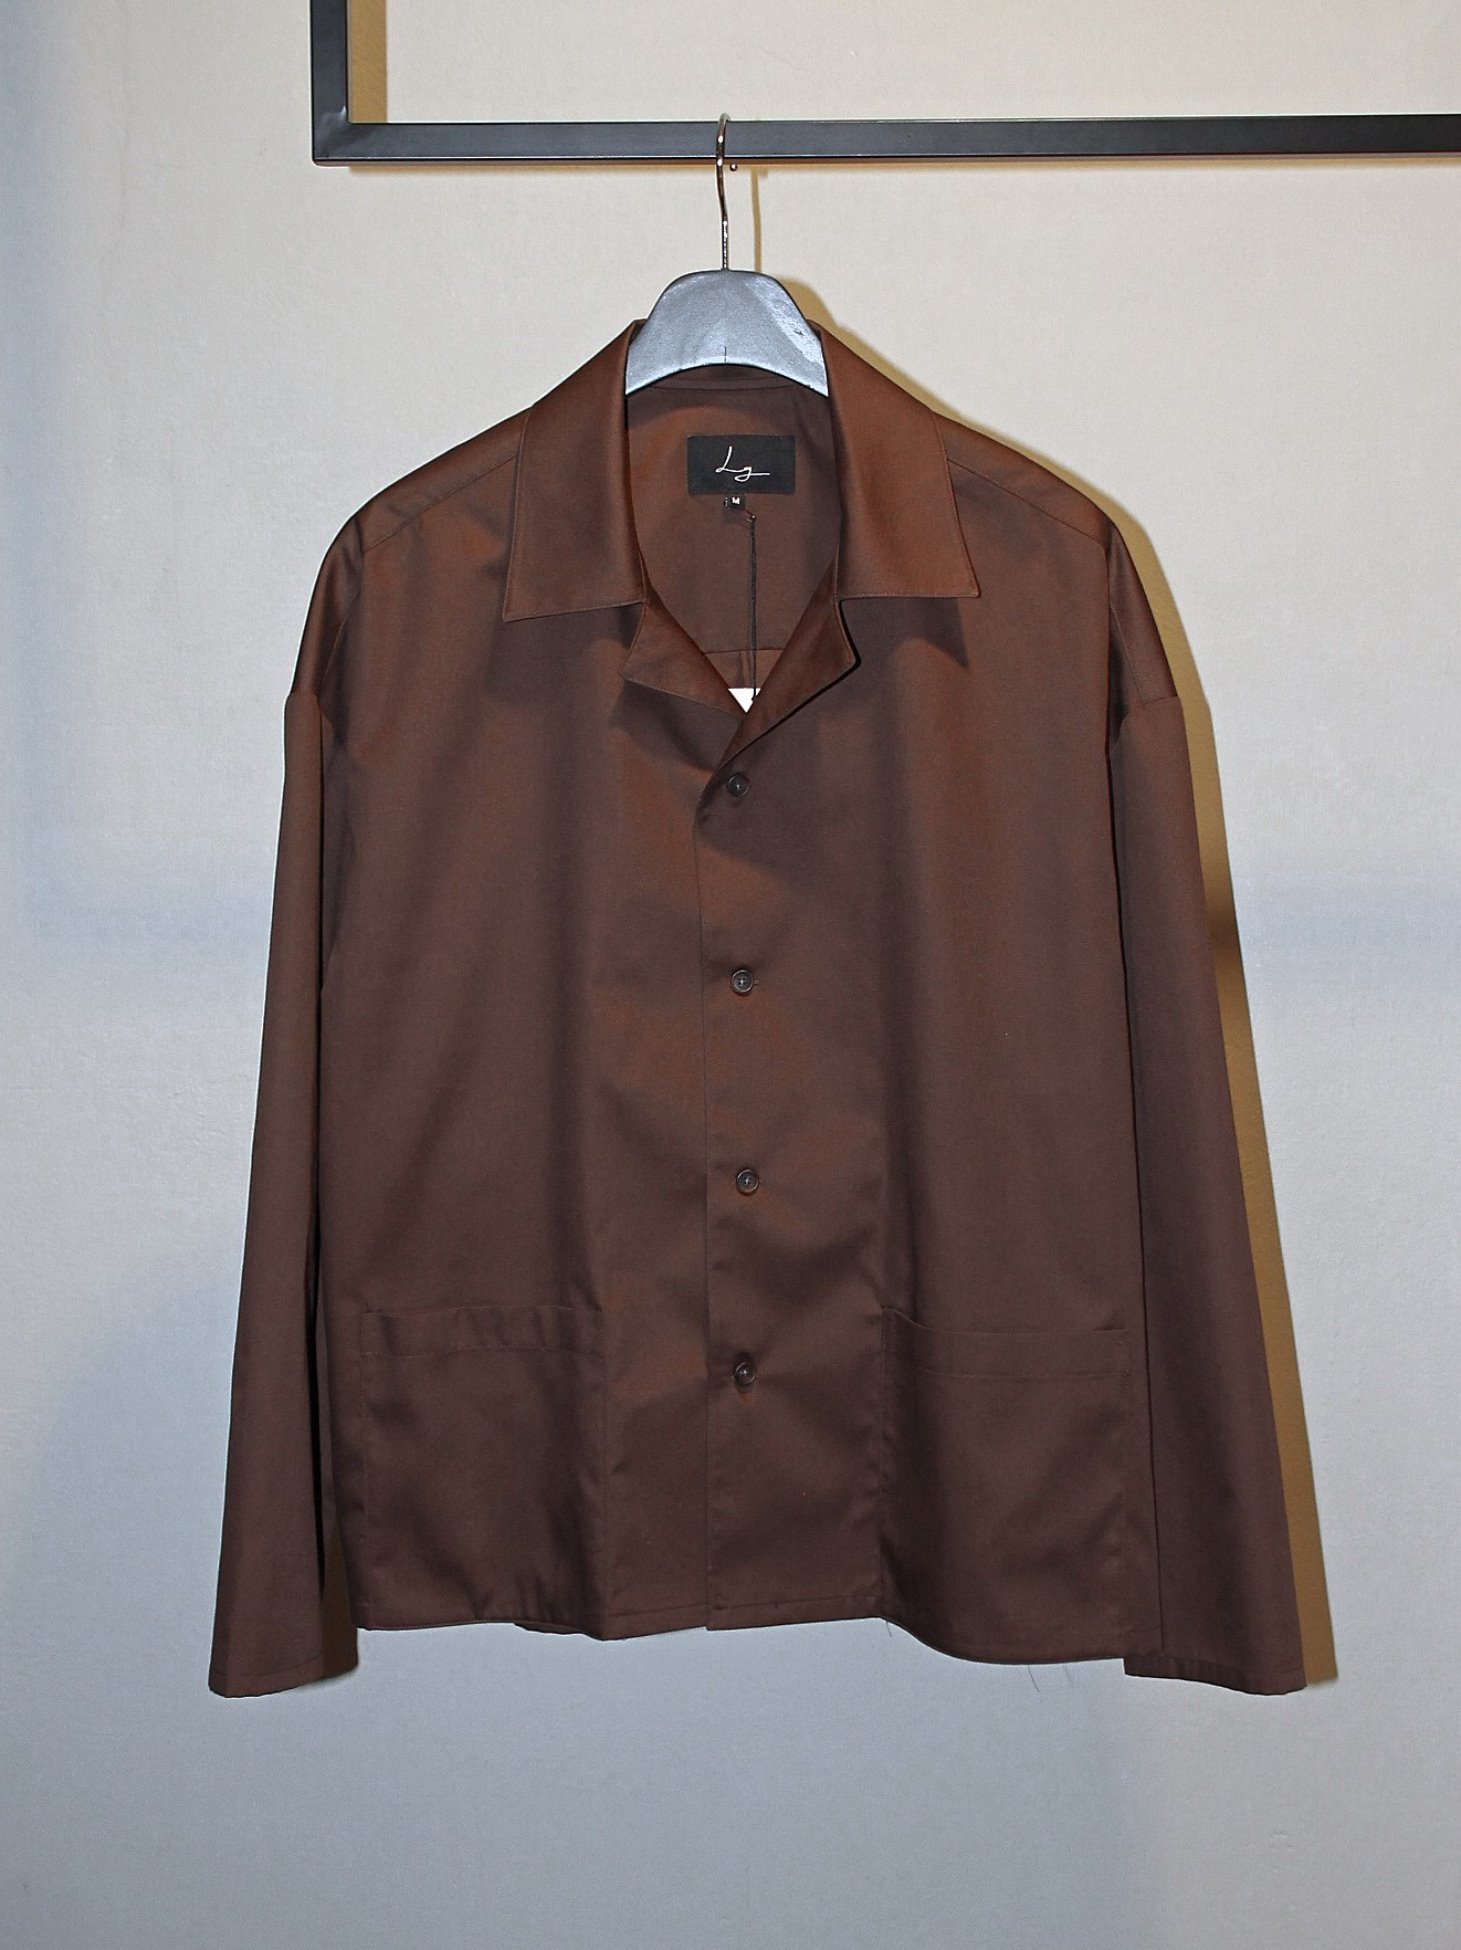 [Log] Oversized Open Collar Jacket - Brown